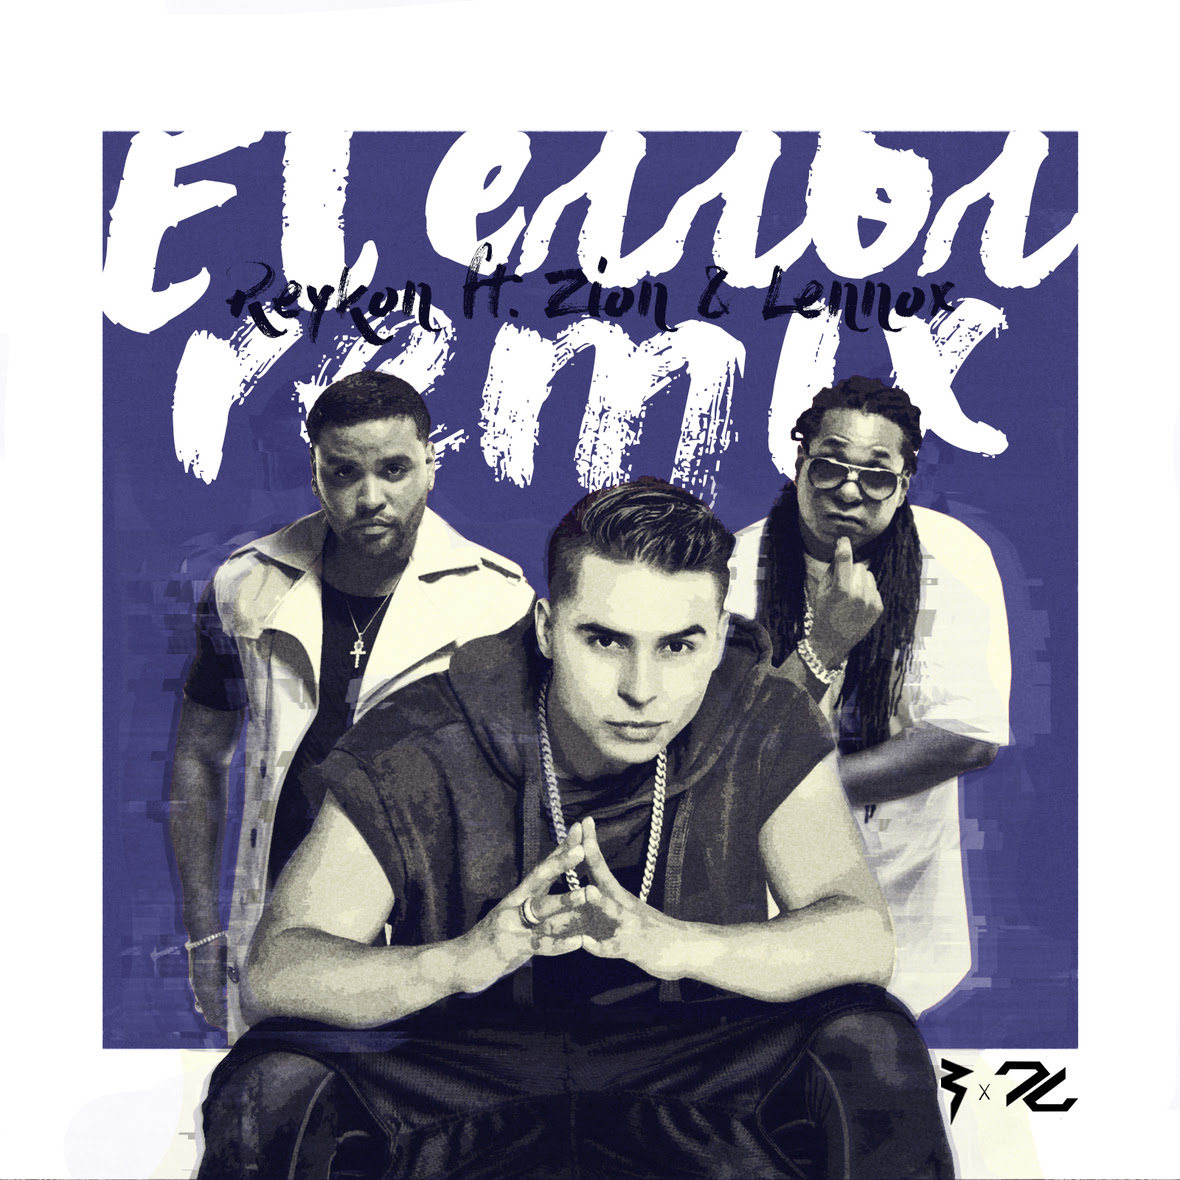 Reykon recently collaborated with Zion y Lennox on El Error